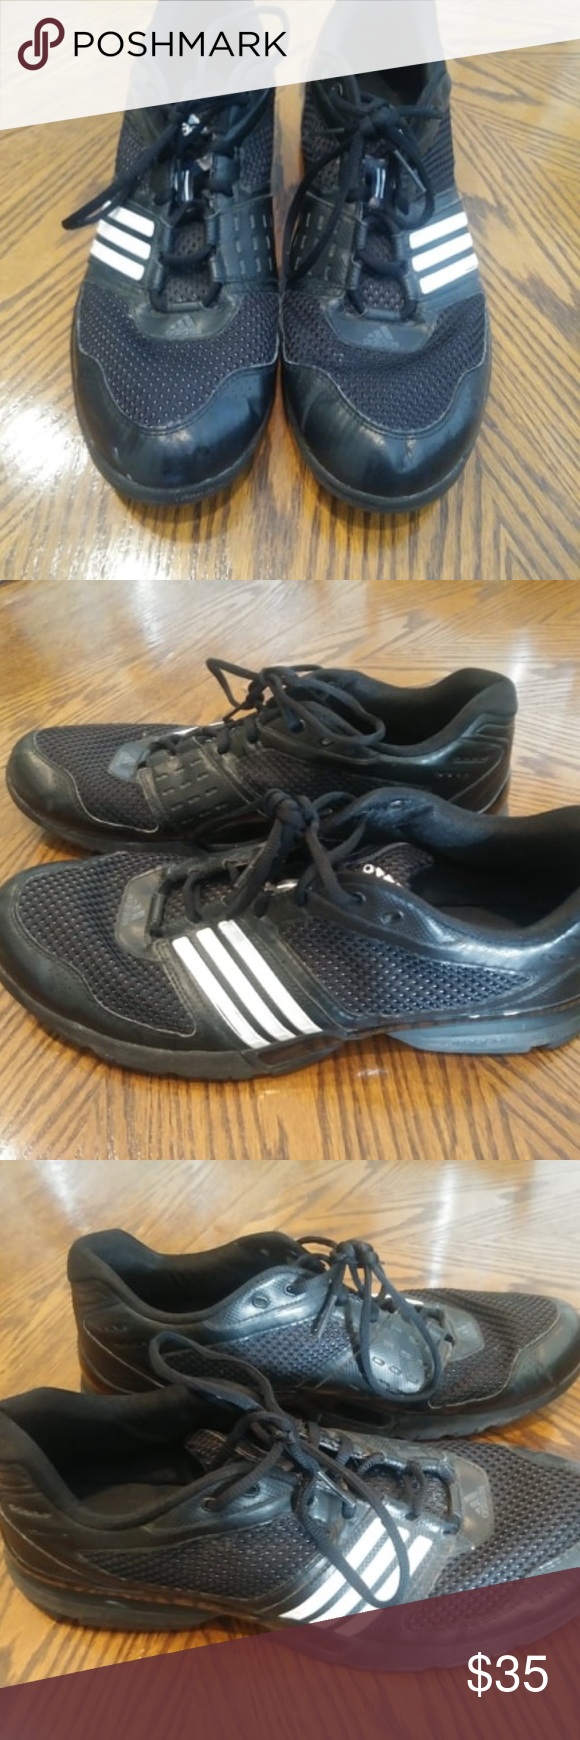 Black Adidas Shoes Size Sneakers 14 Mensboys Mens 2009 wO8kn0P